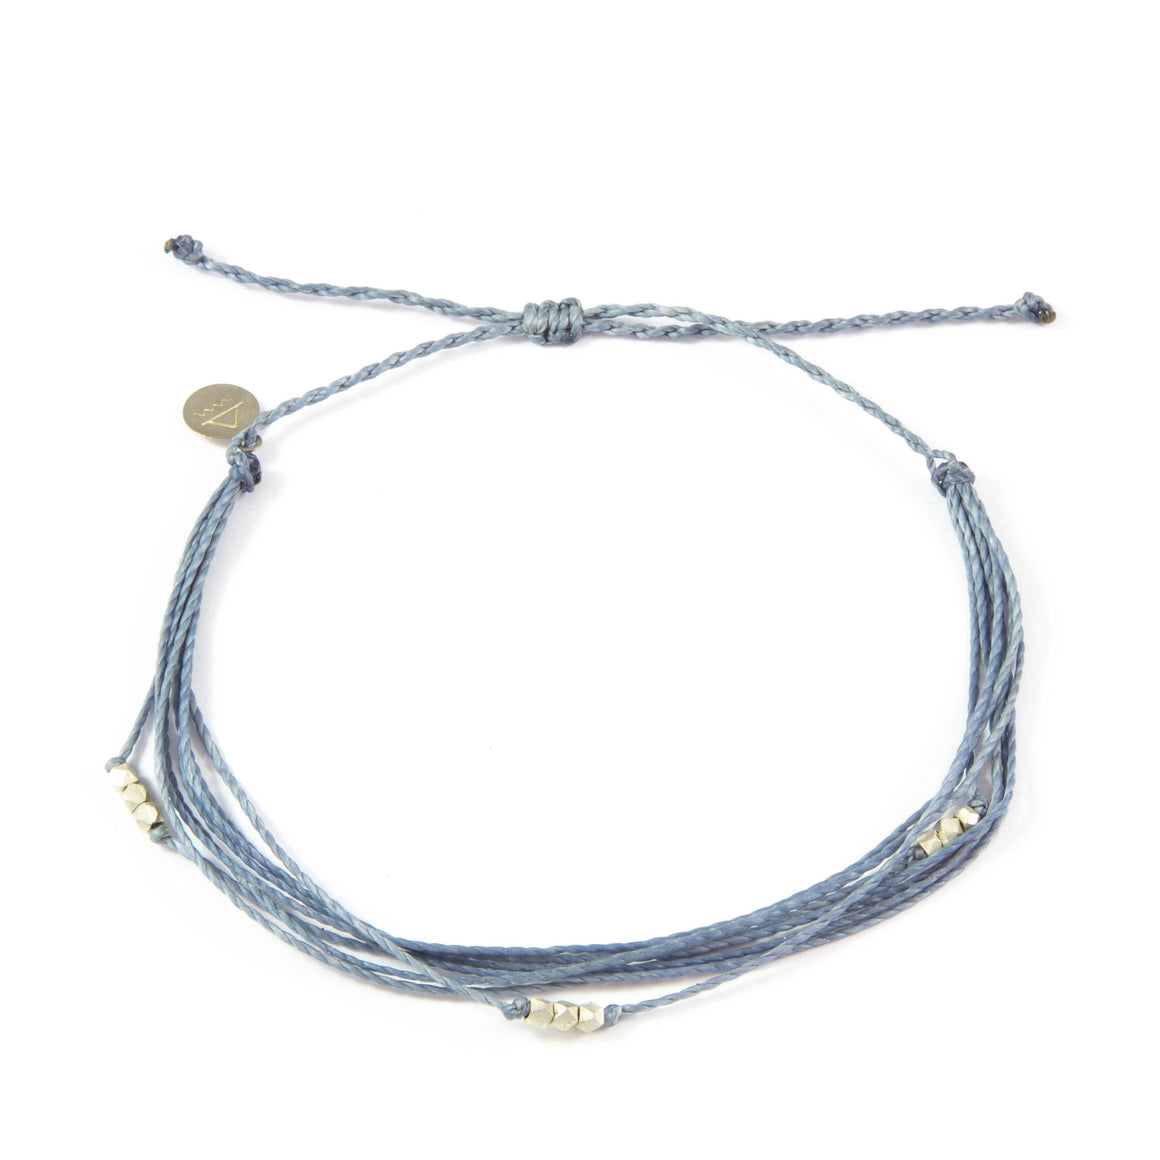 Denim Macua in Silver Anklet